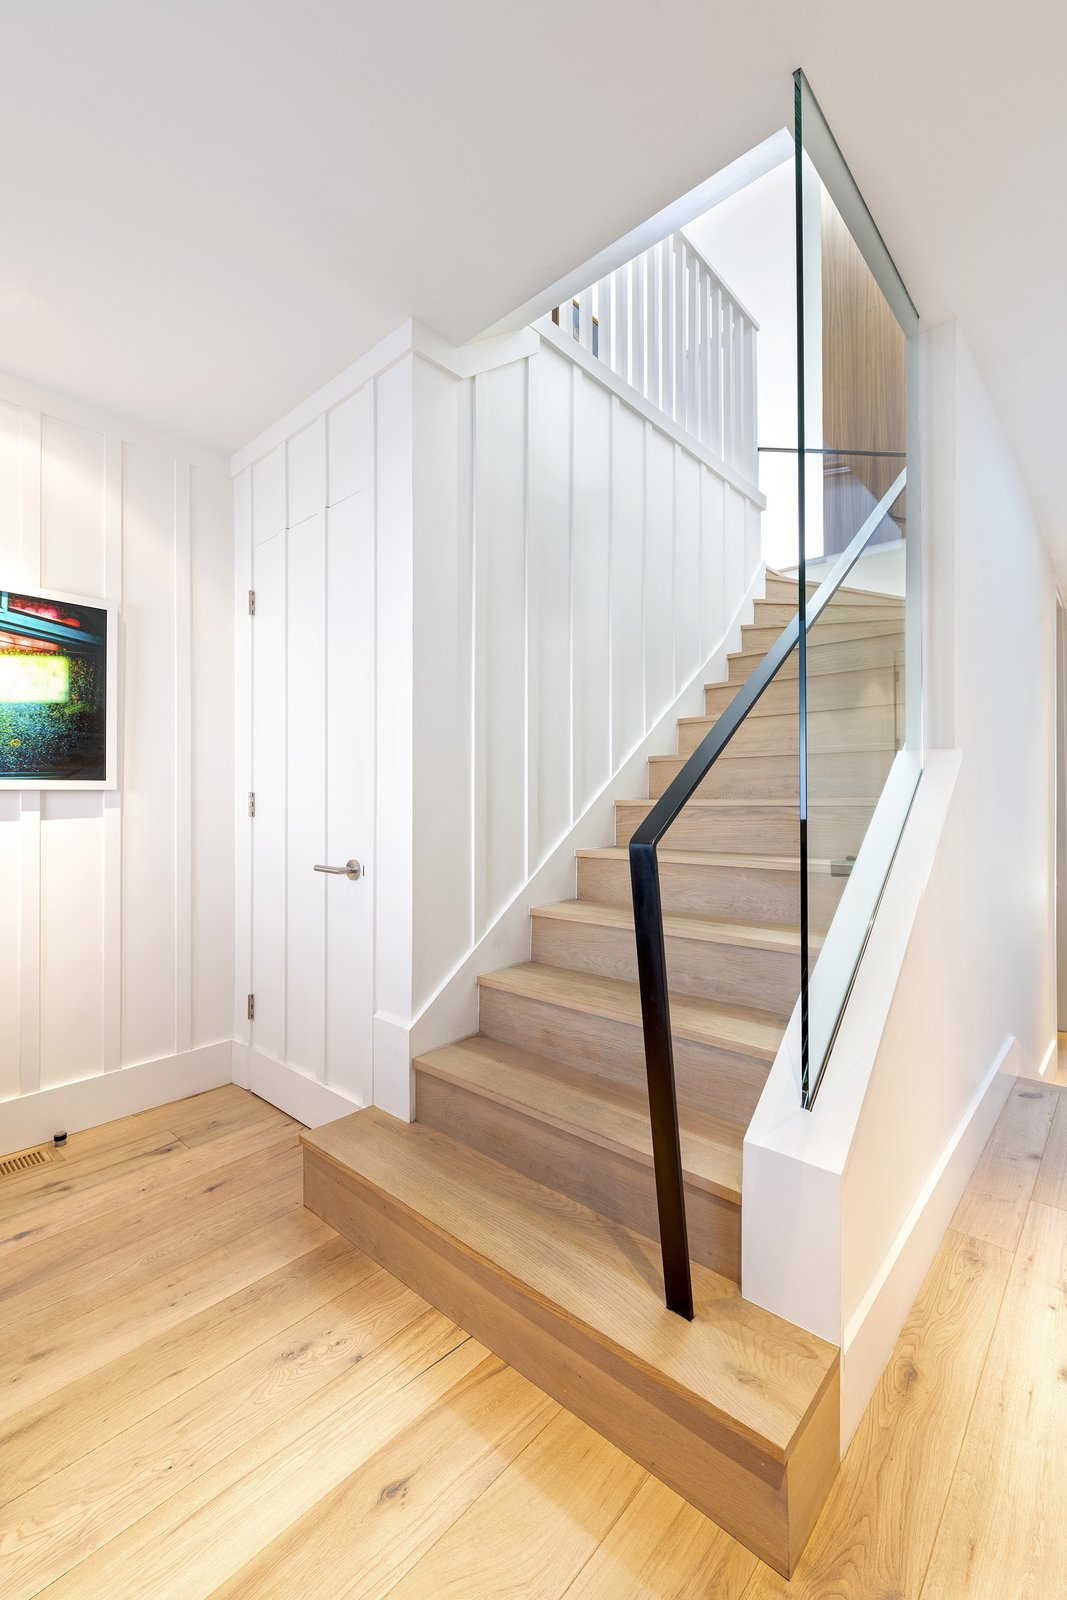 Staircase, Wood Tread, and Metal Railing Main Entry  Precita Park Residence by Studio Sarah Willmer, Architecture